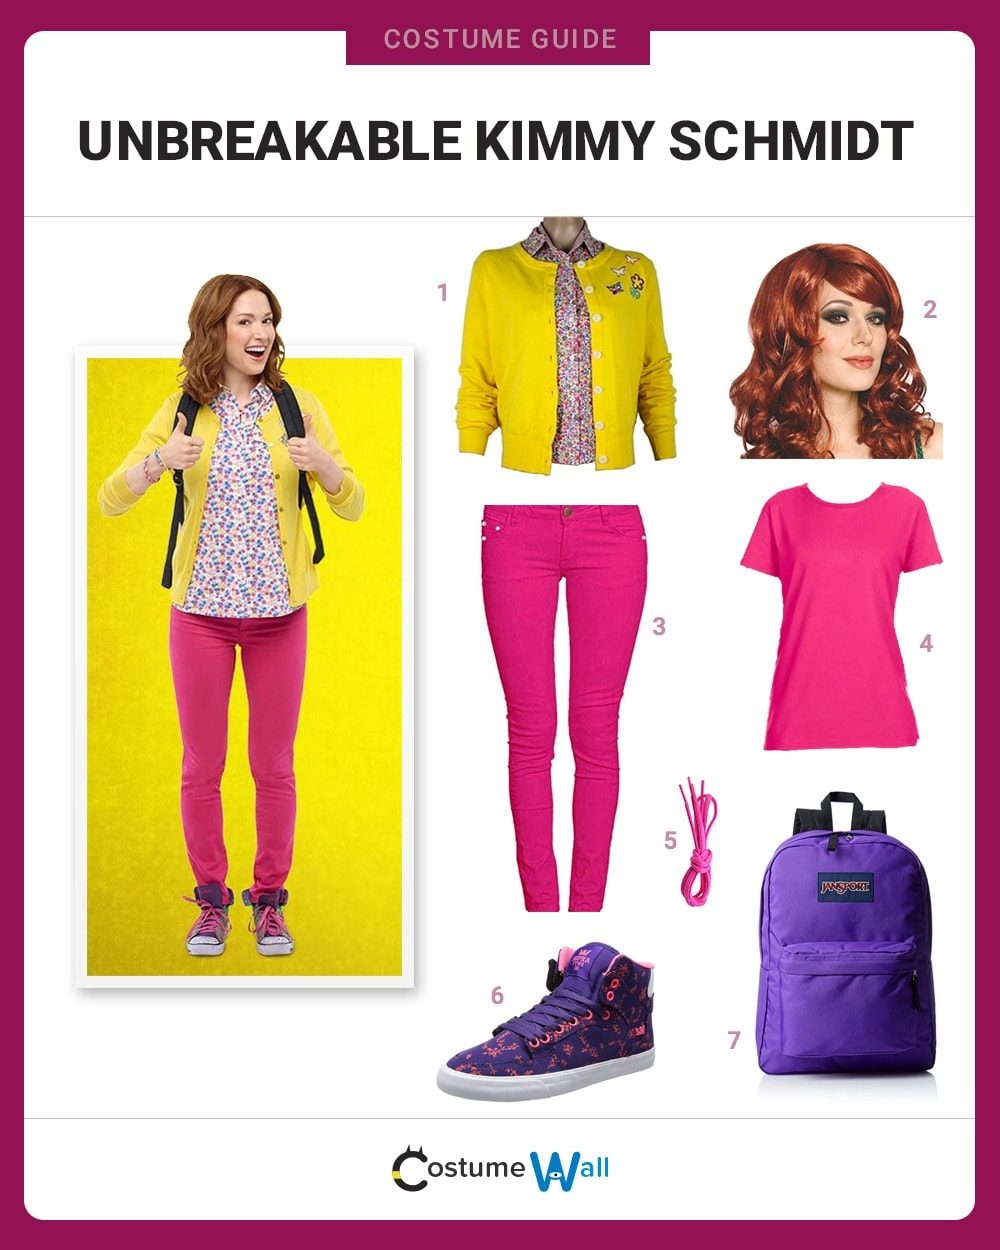 Unbreakable Kimmy Schmidt Costume Guide